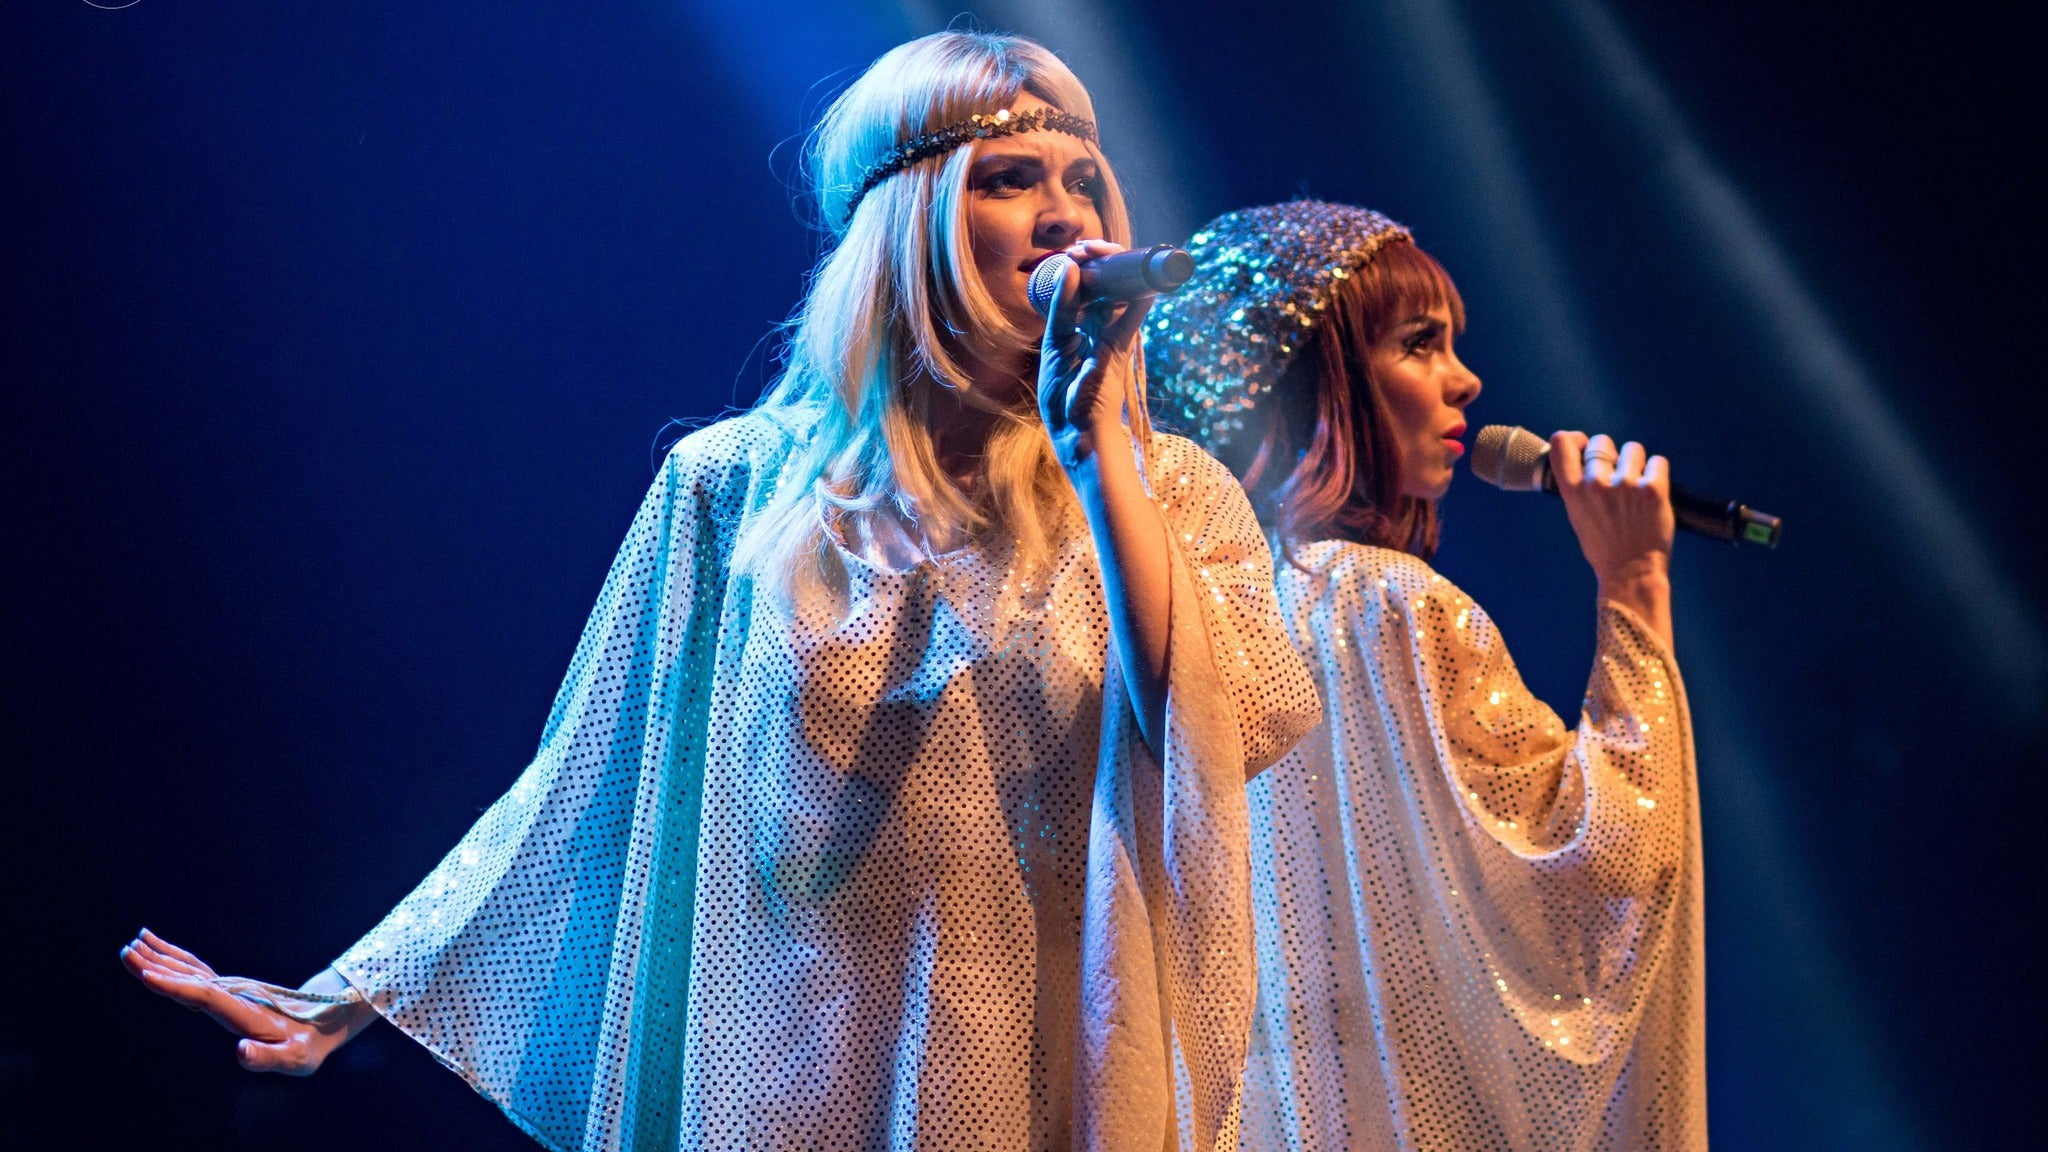 Abba Mania at Scottish Rite Auditorium - Collingswood, NJ 08108